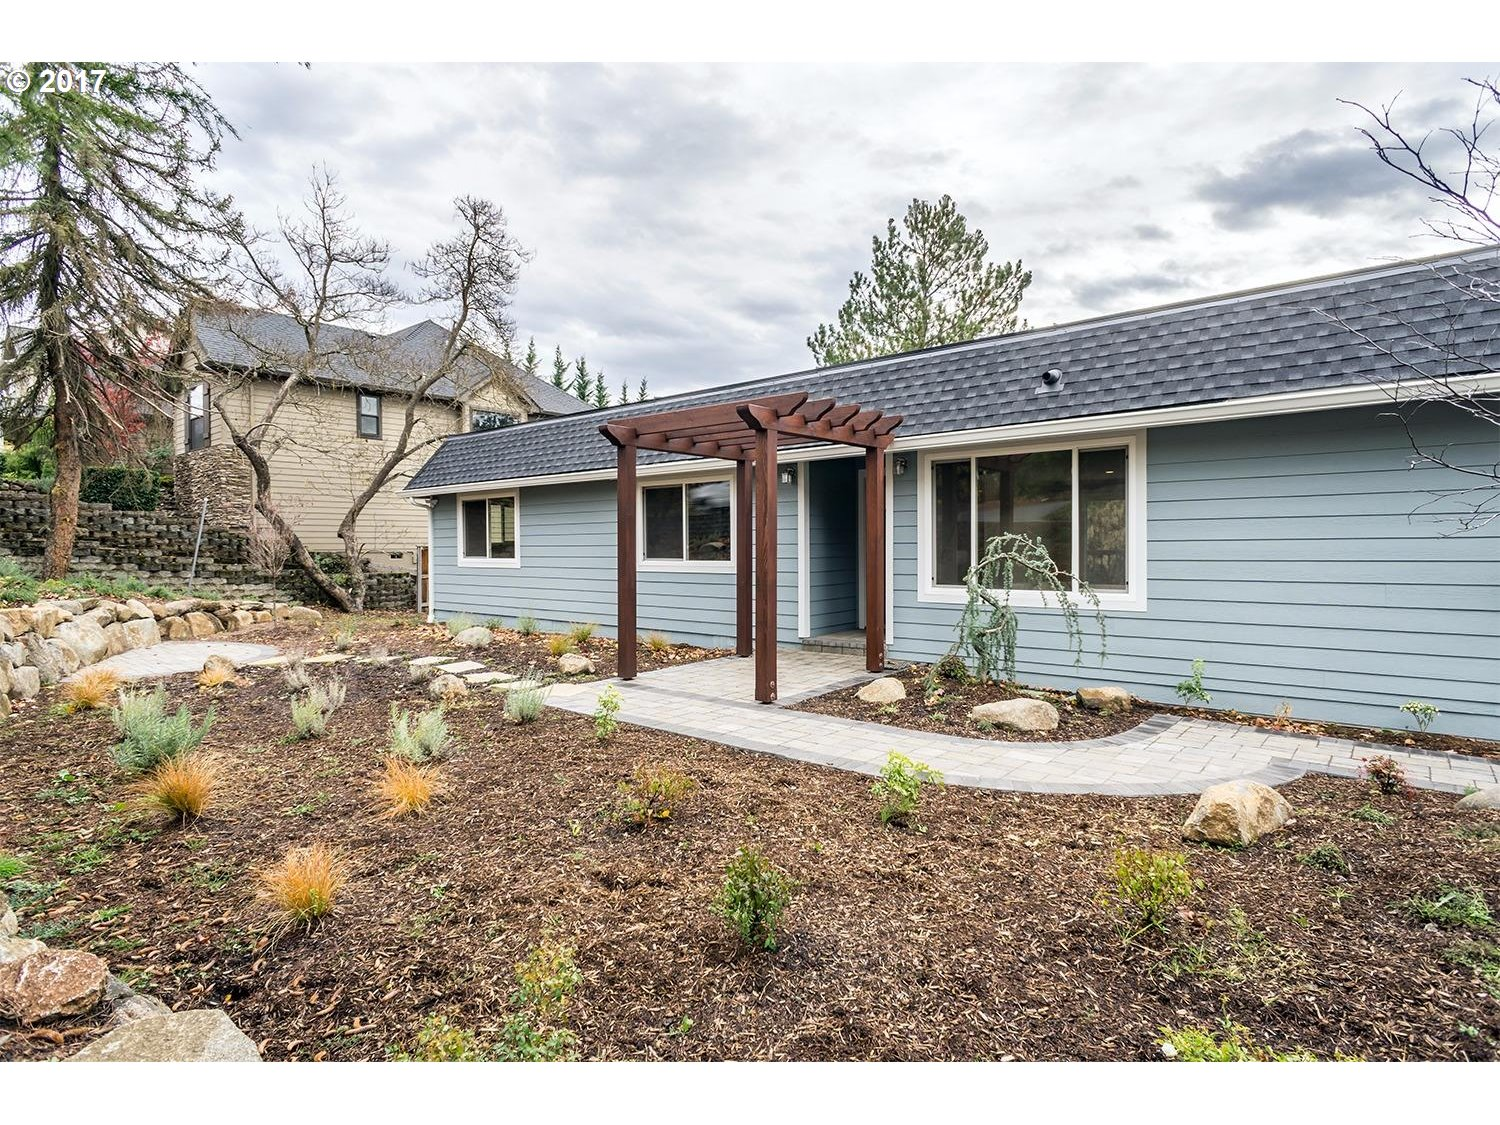 Phoenix, OR 4 Bedroom Home For Sale